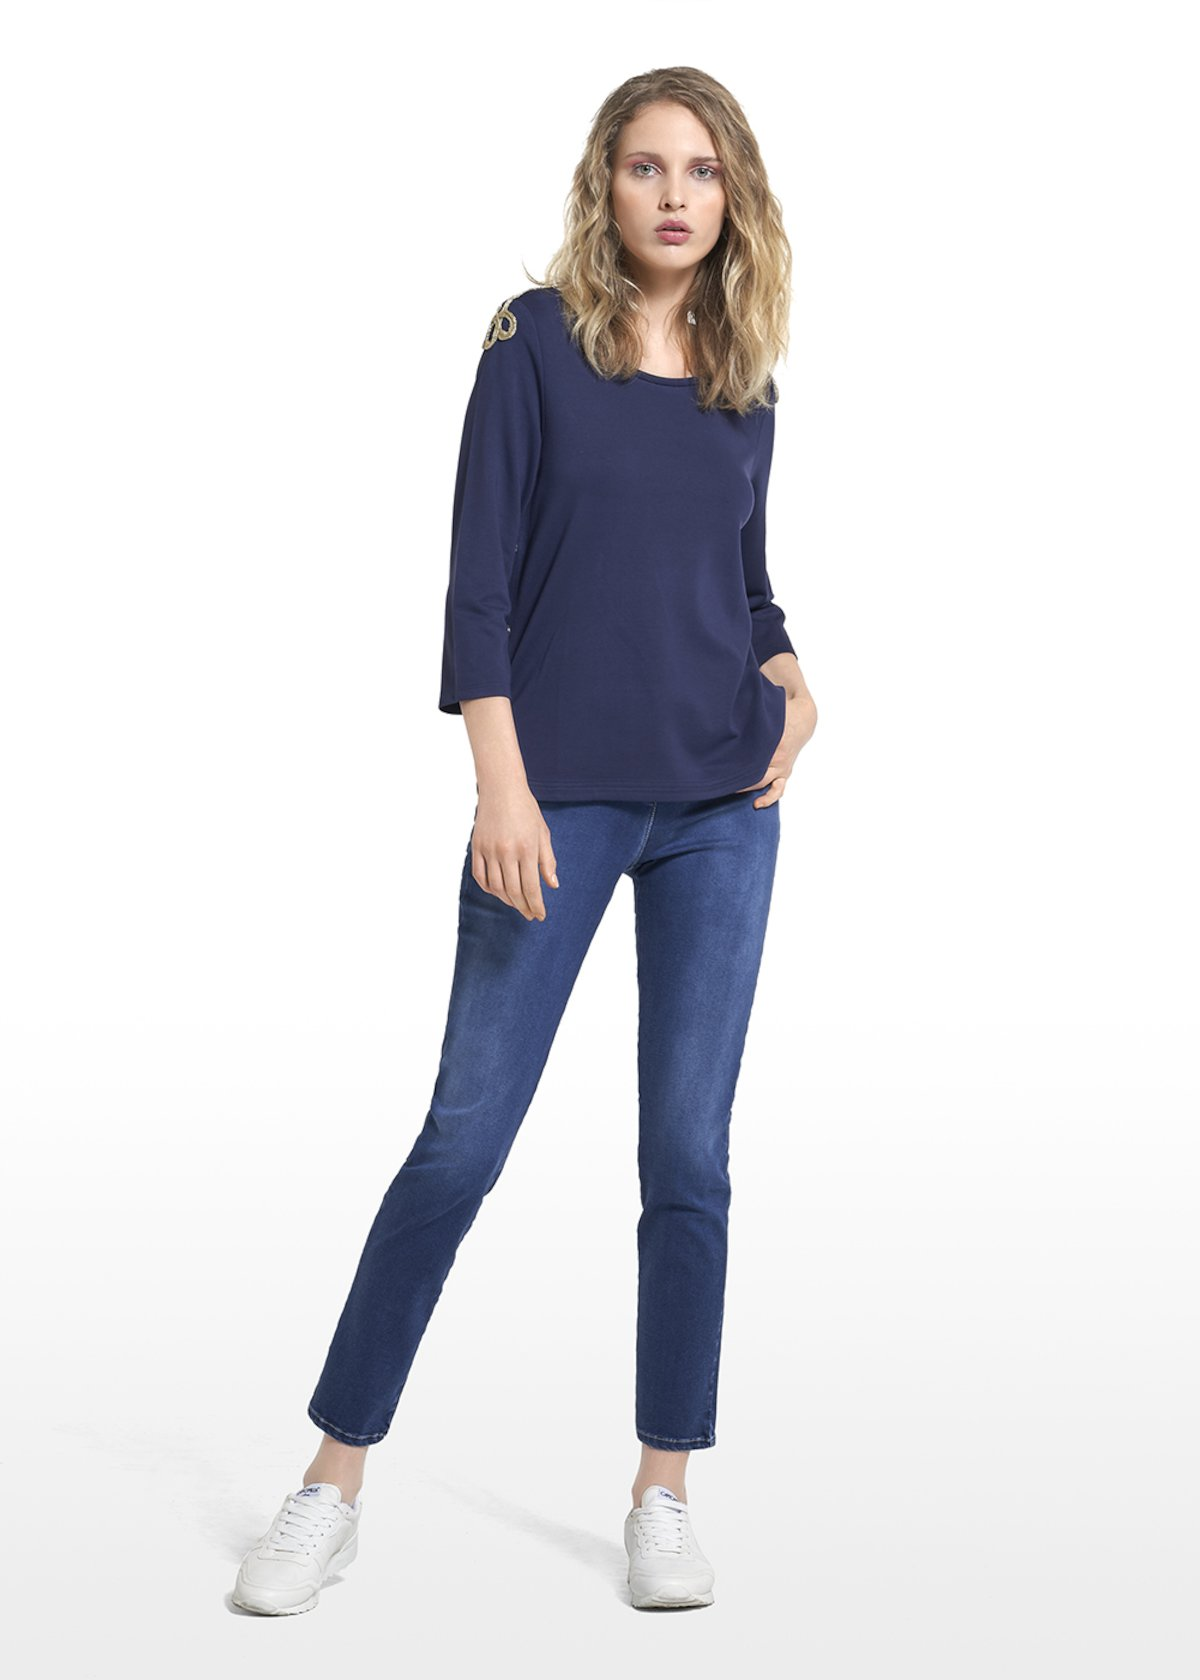 Saint T-shirt with marine style applications on shoulders - Medium Blue - Woman